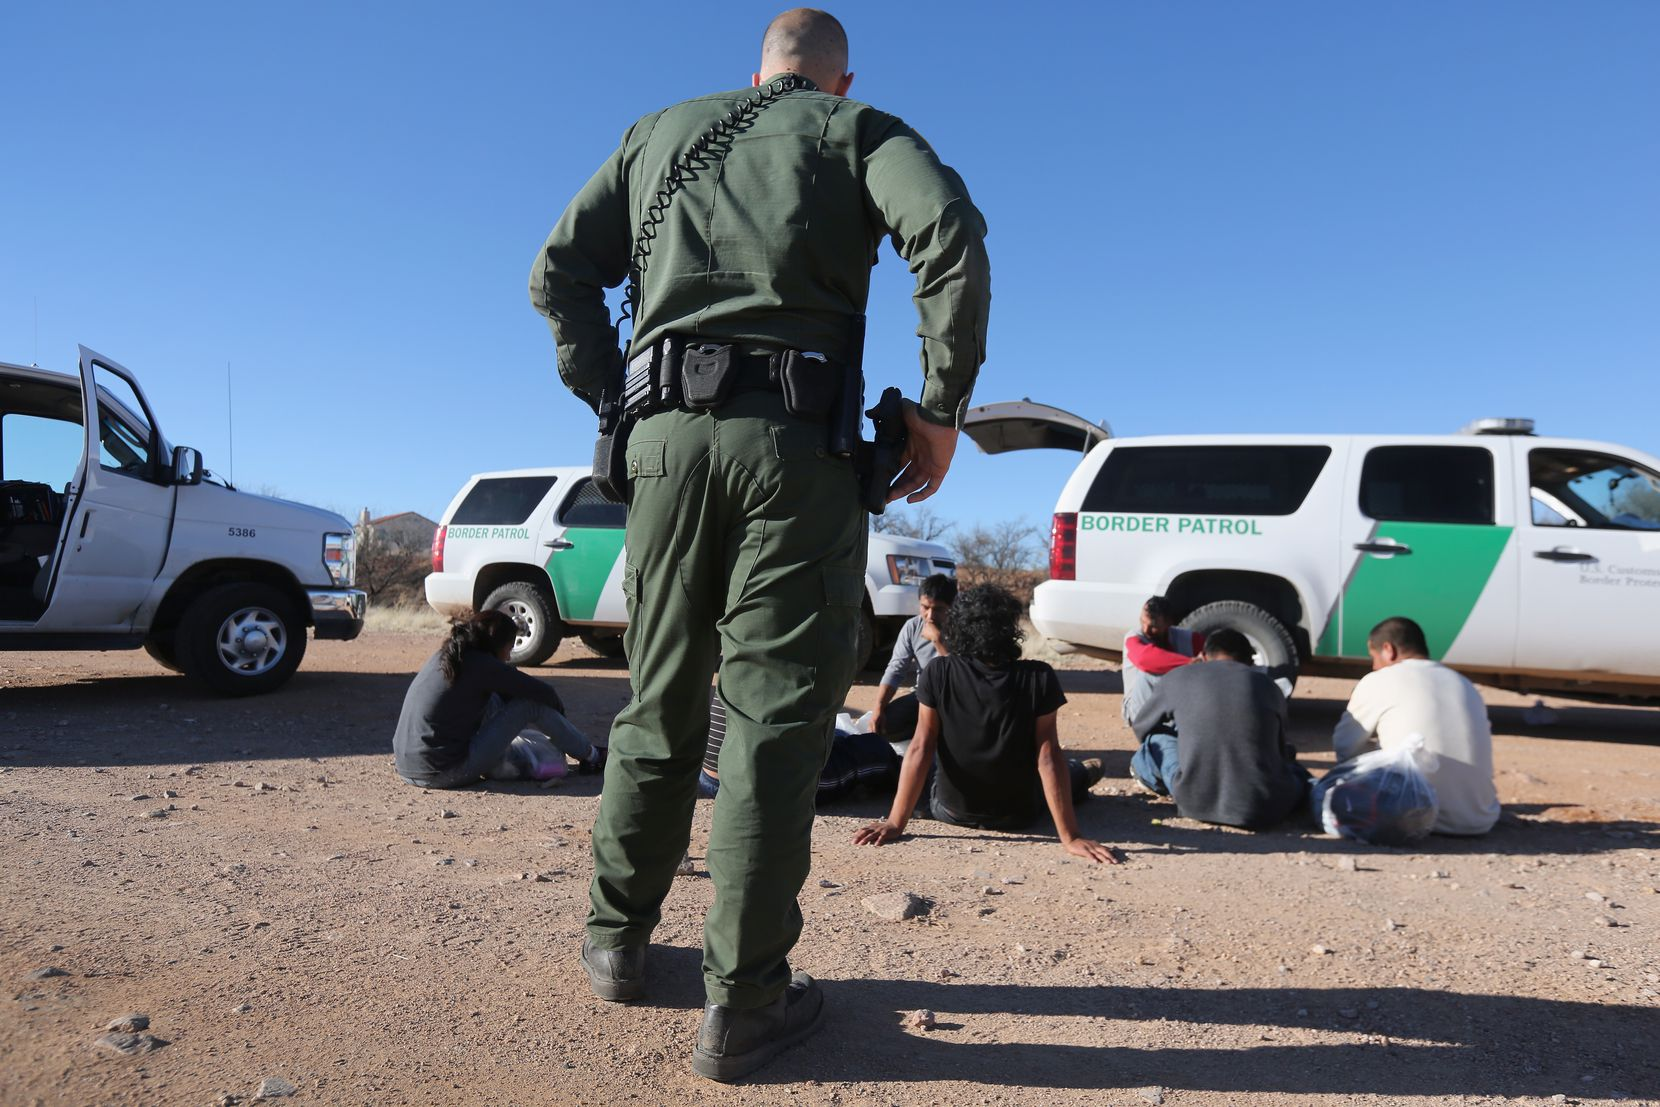 A Border Patrol agent detains suspected unauthorized immigrants in the area of Walker Canyon in Arizona.